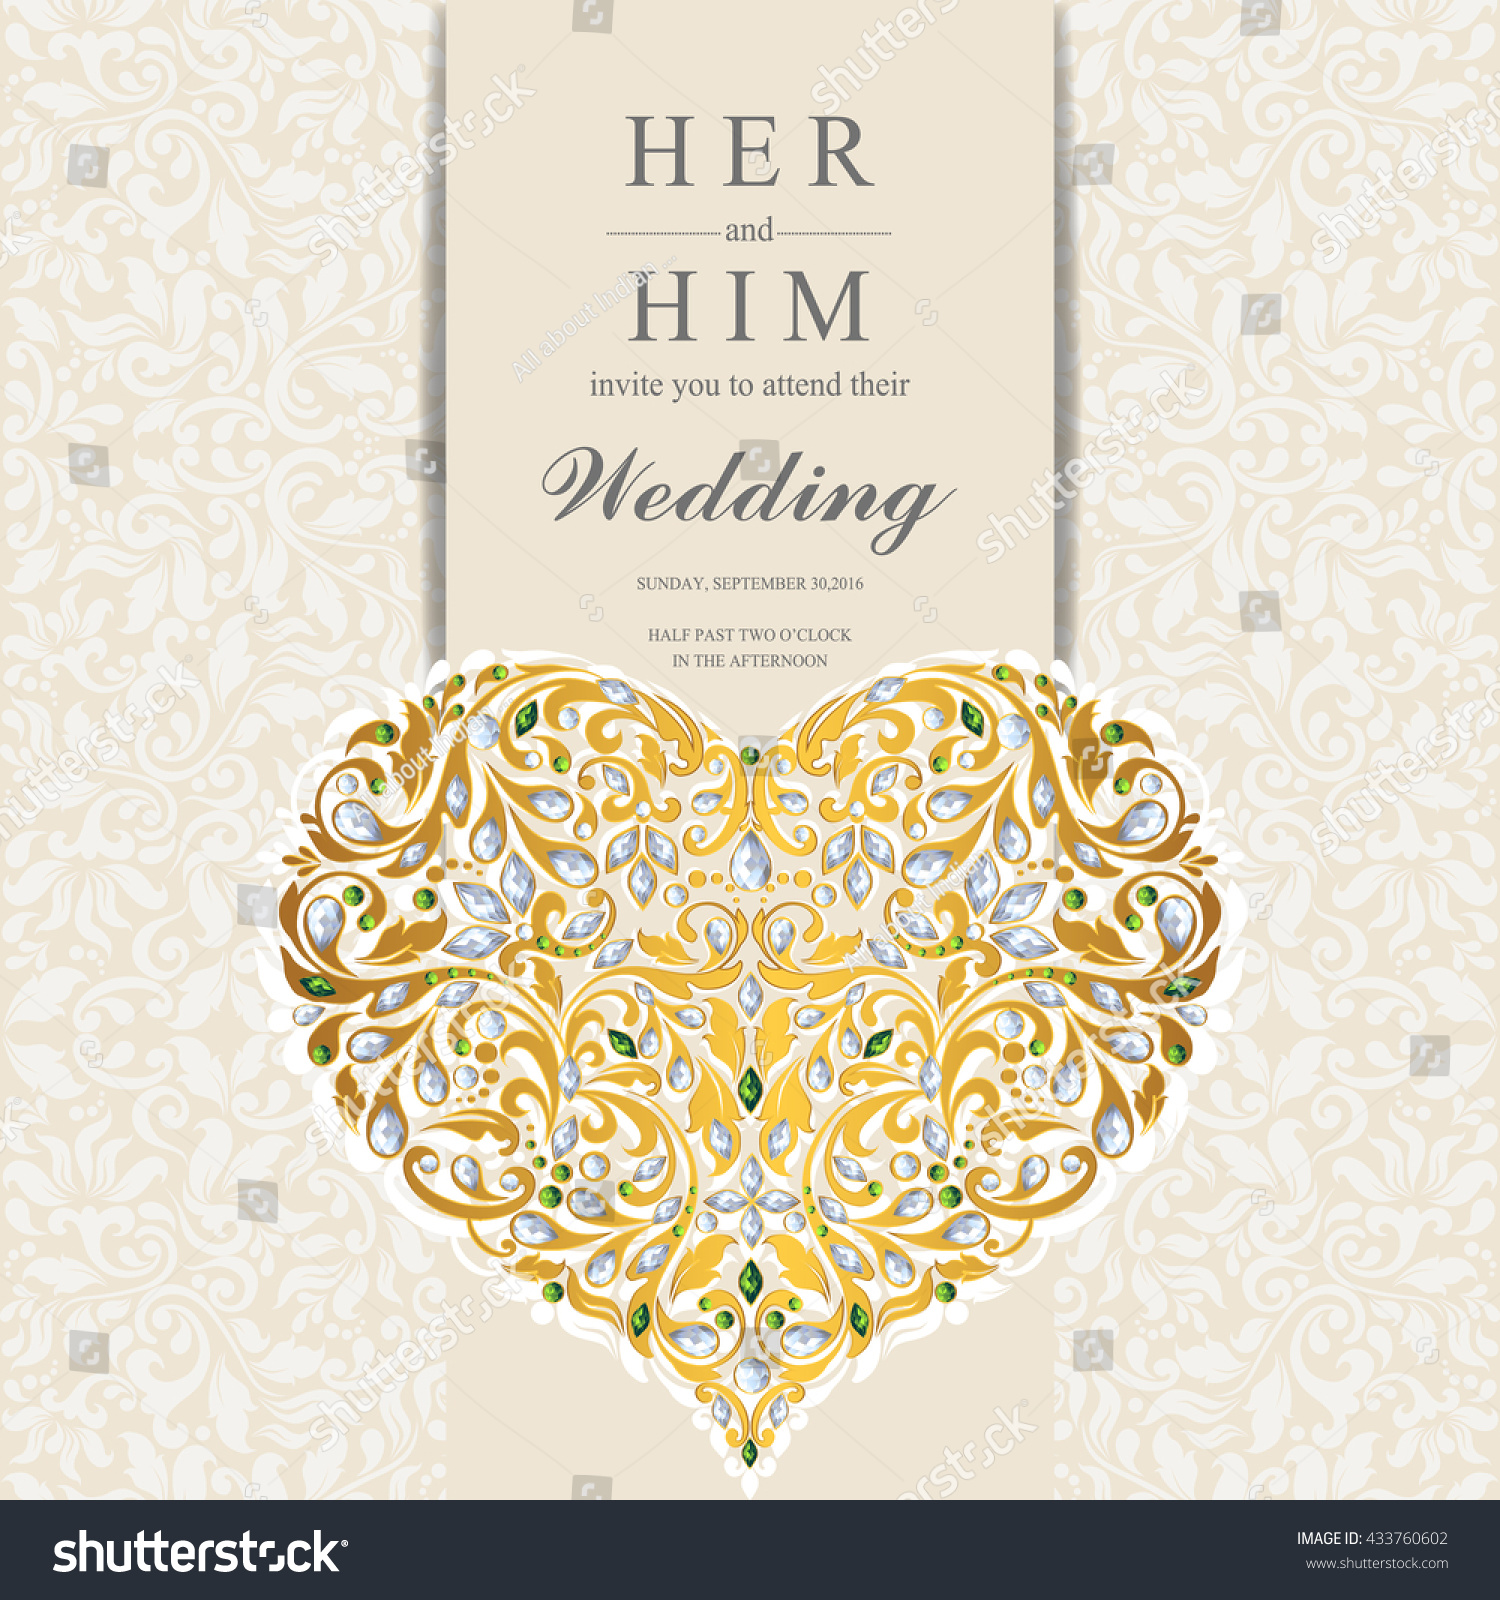 Wedding Card Invitation Card Card Abstract Stock Vector 433760602 ...